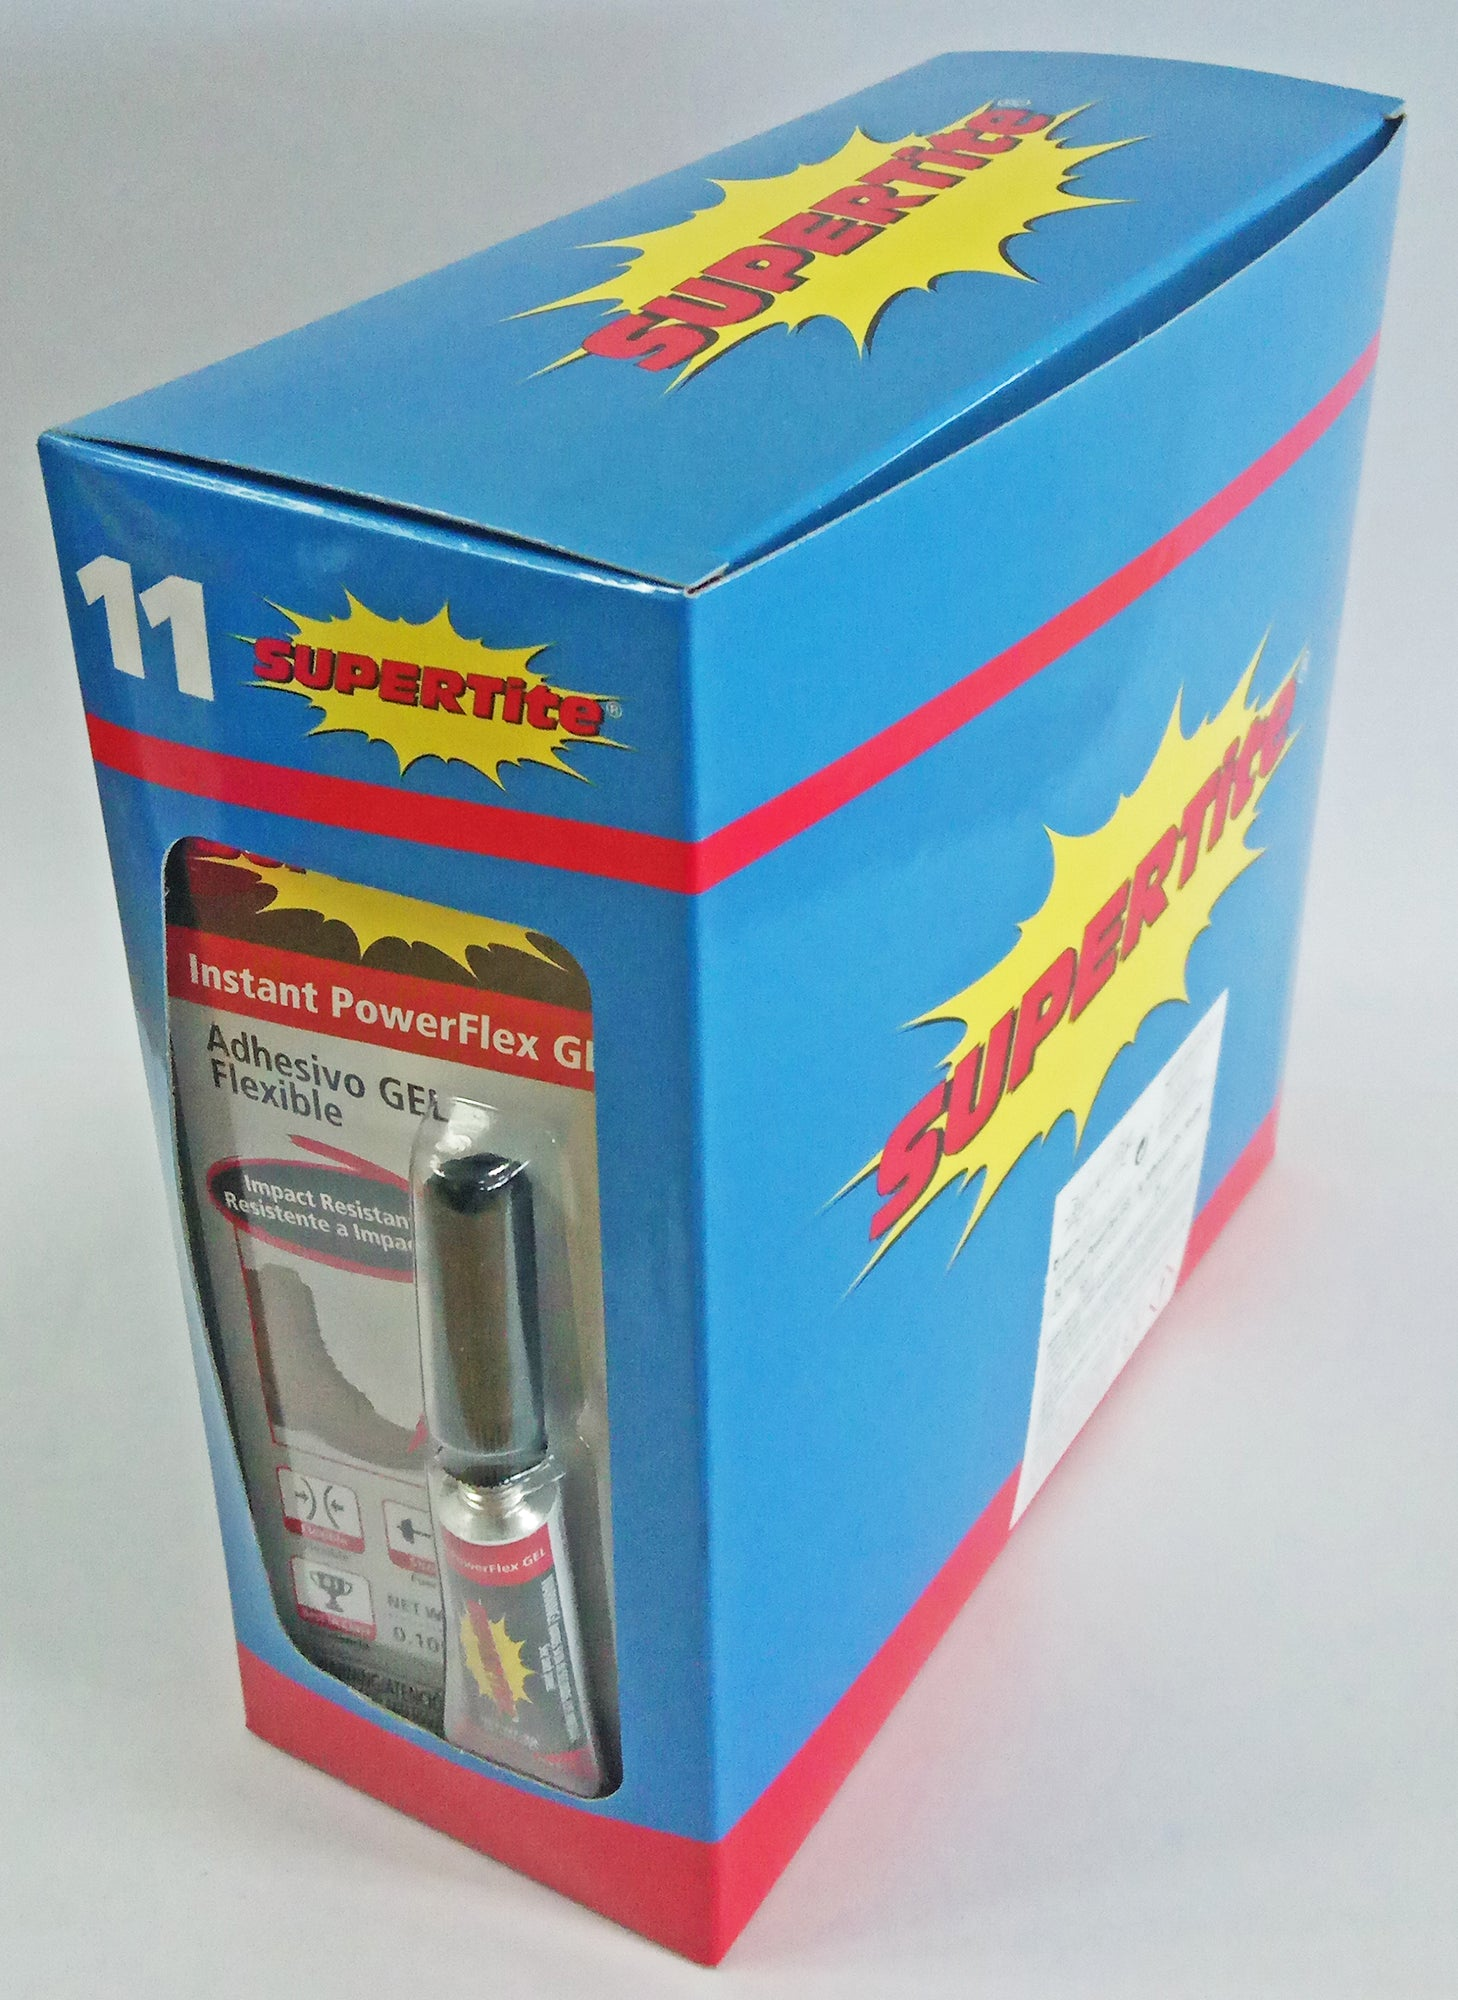 Ref-1011 Supertite Instant Power Flex GEL- 3g (0.105oz) Tube